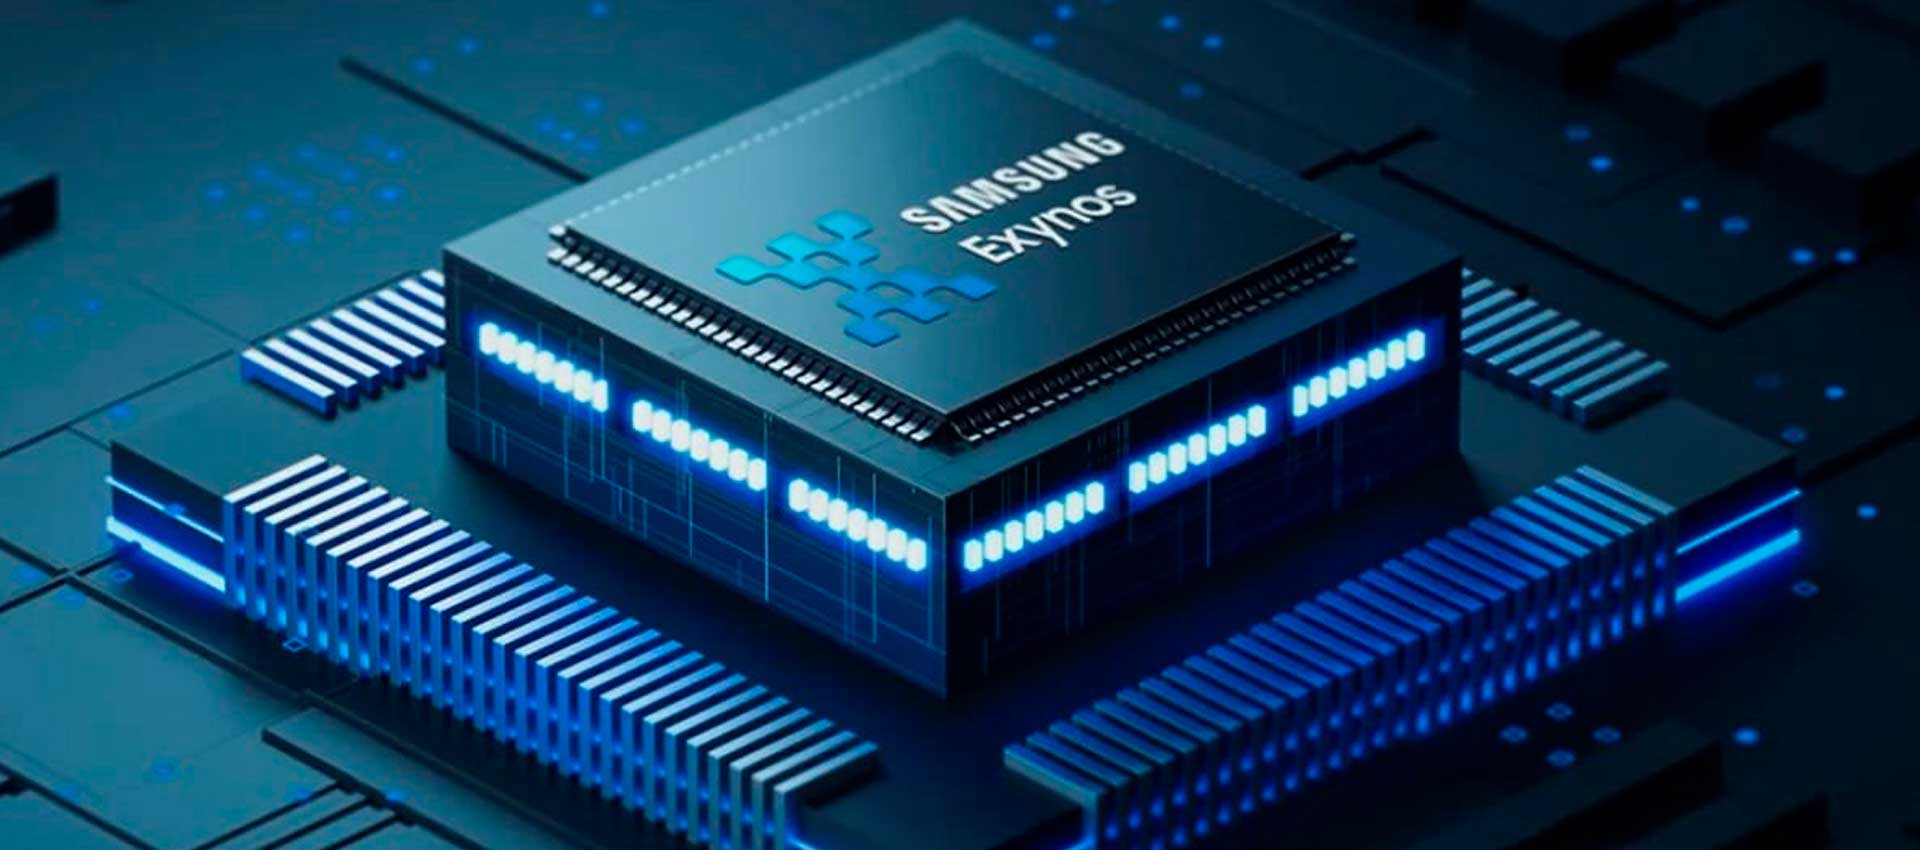 Samsung new AMD chipset will perform better than Apple chipset